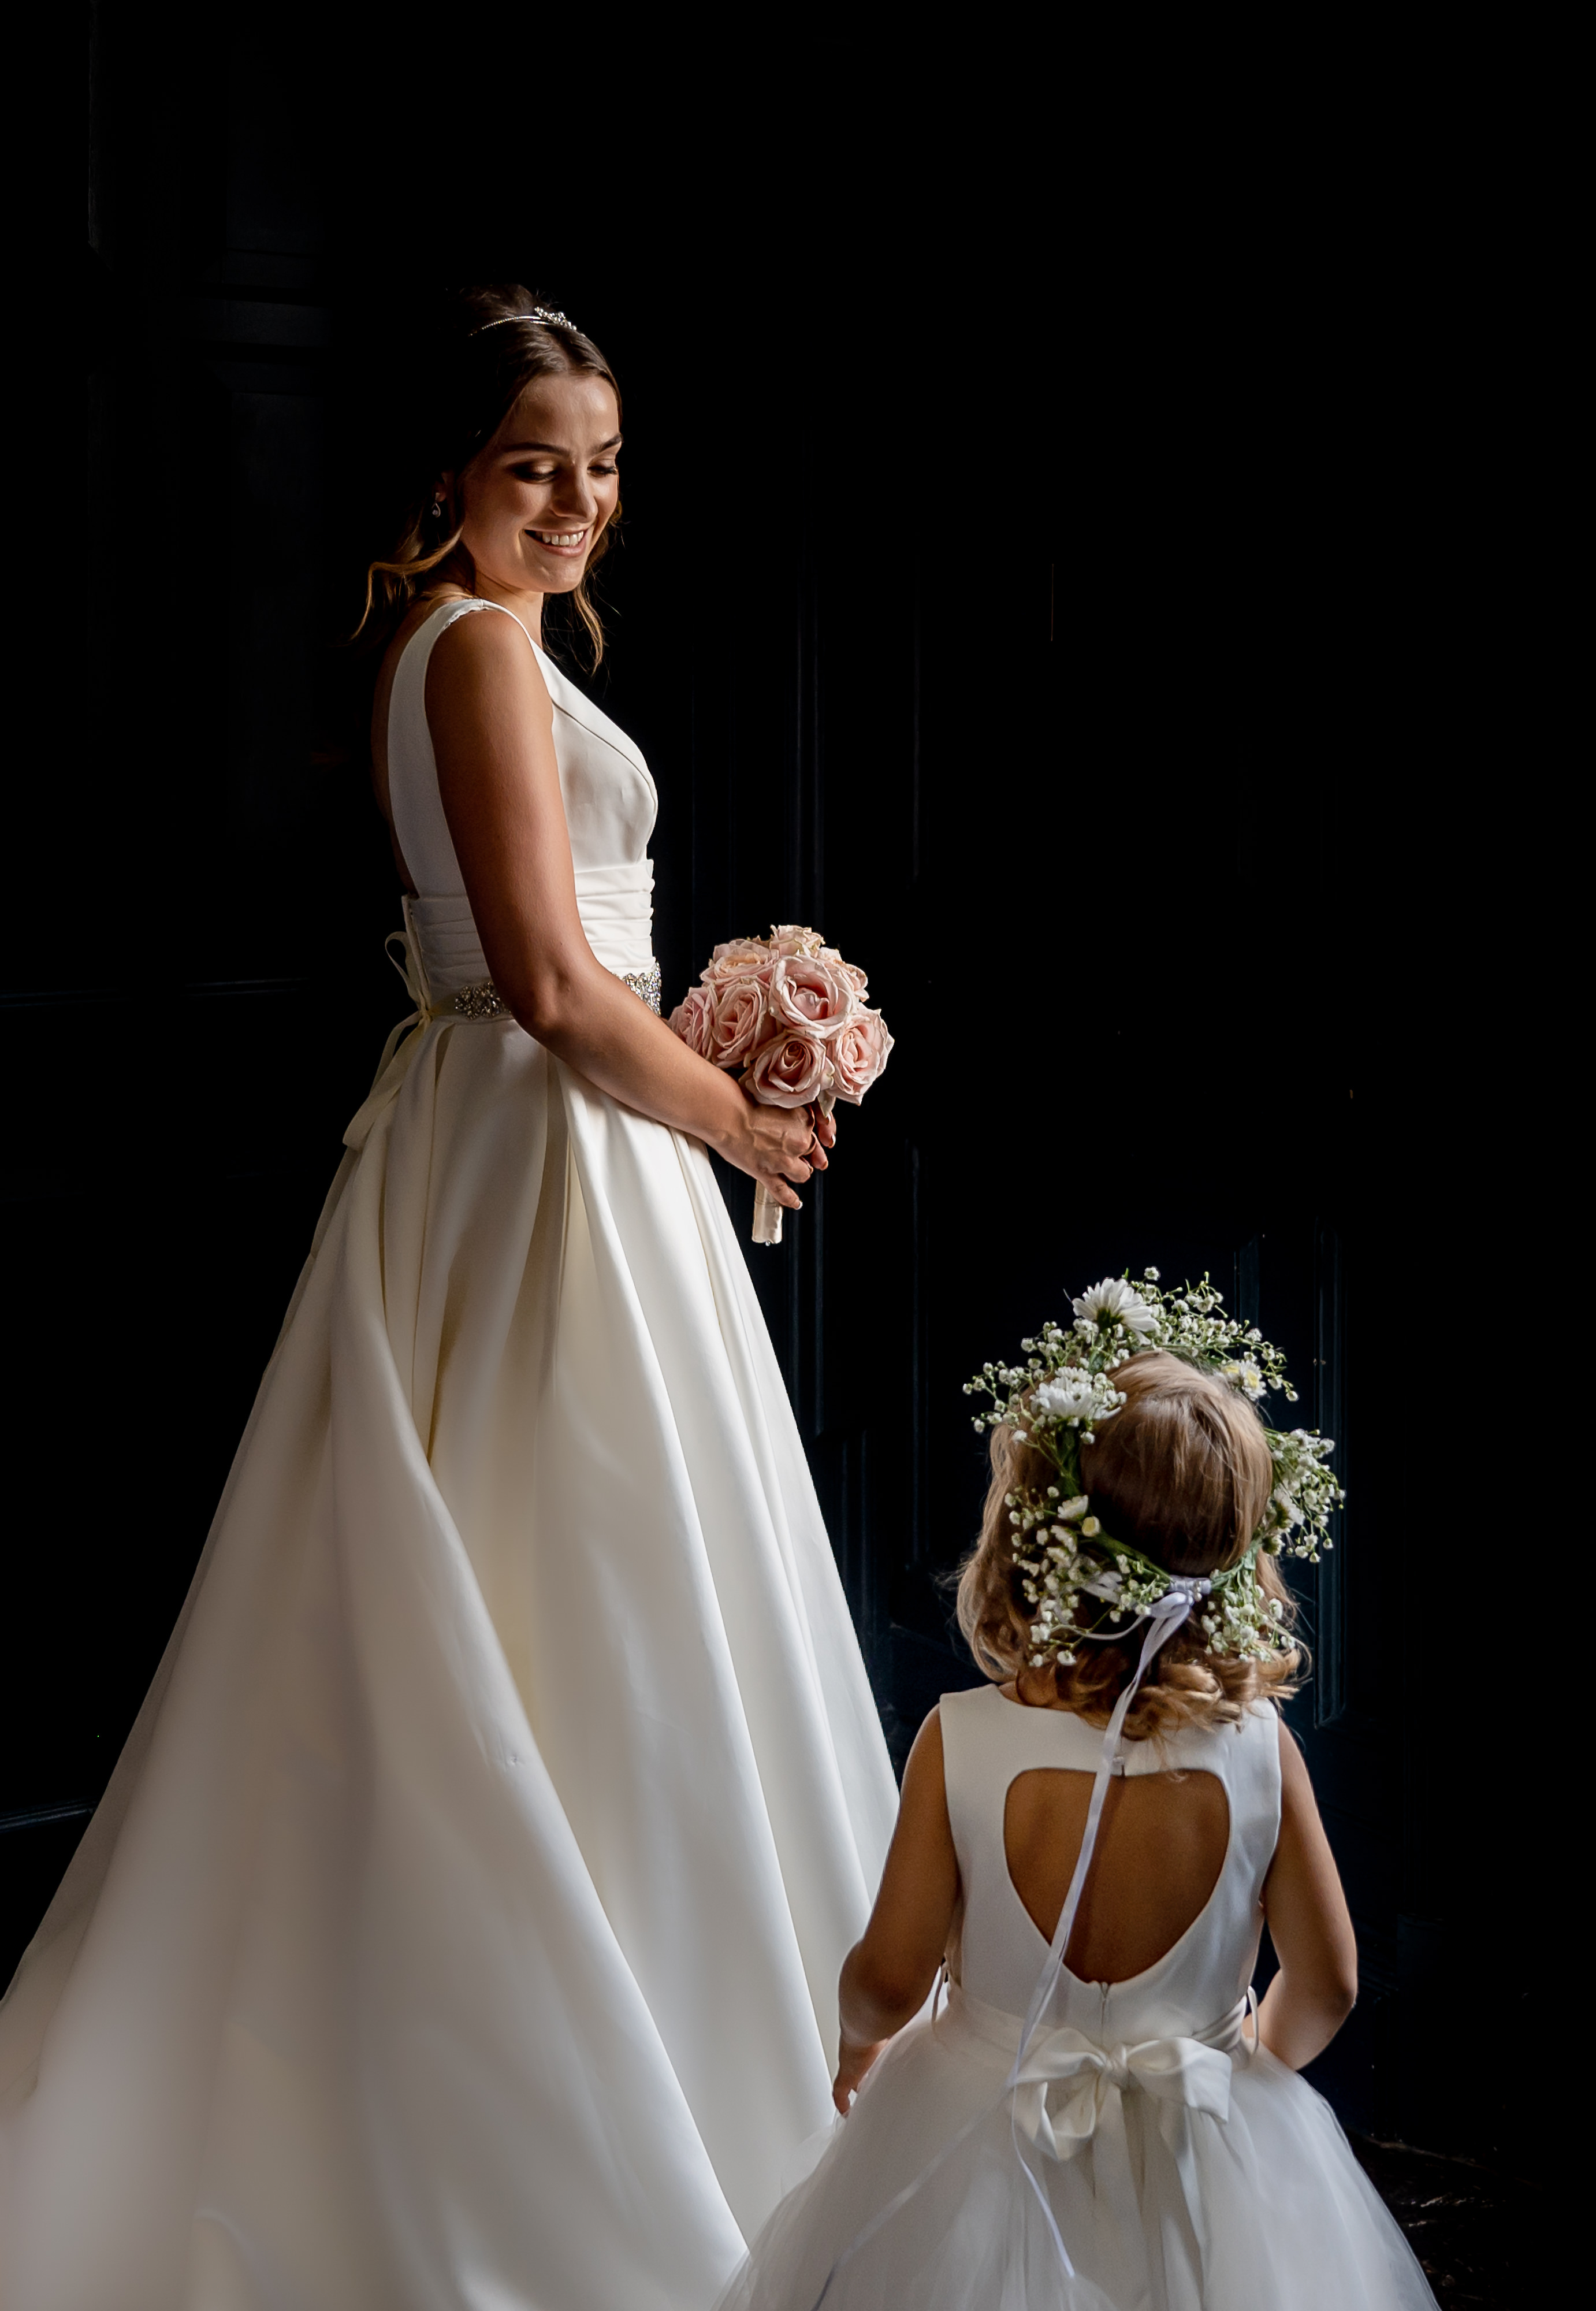 Bride portrait with flower girl - photo by John Gillooley